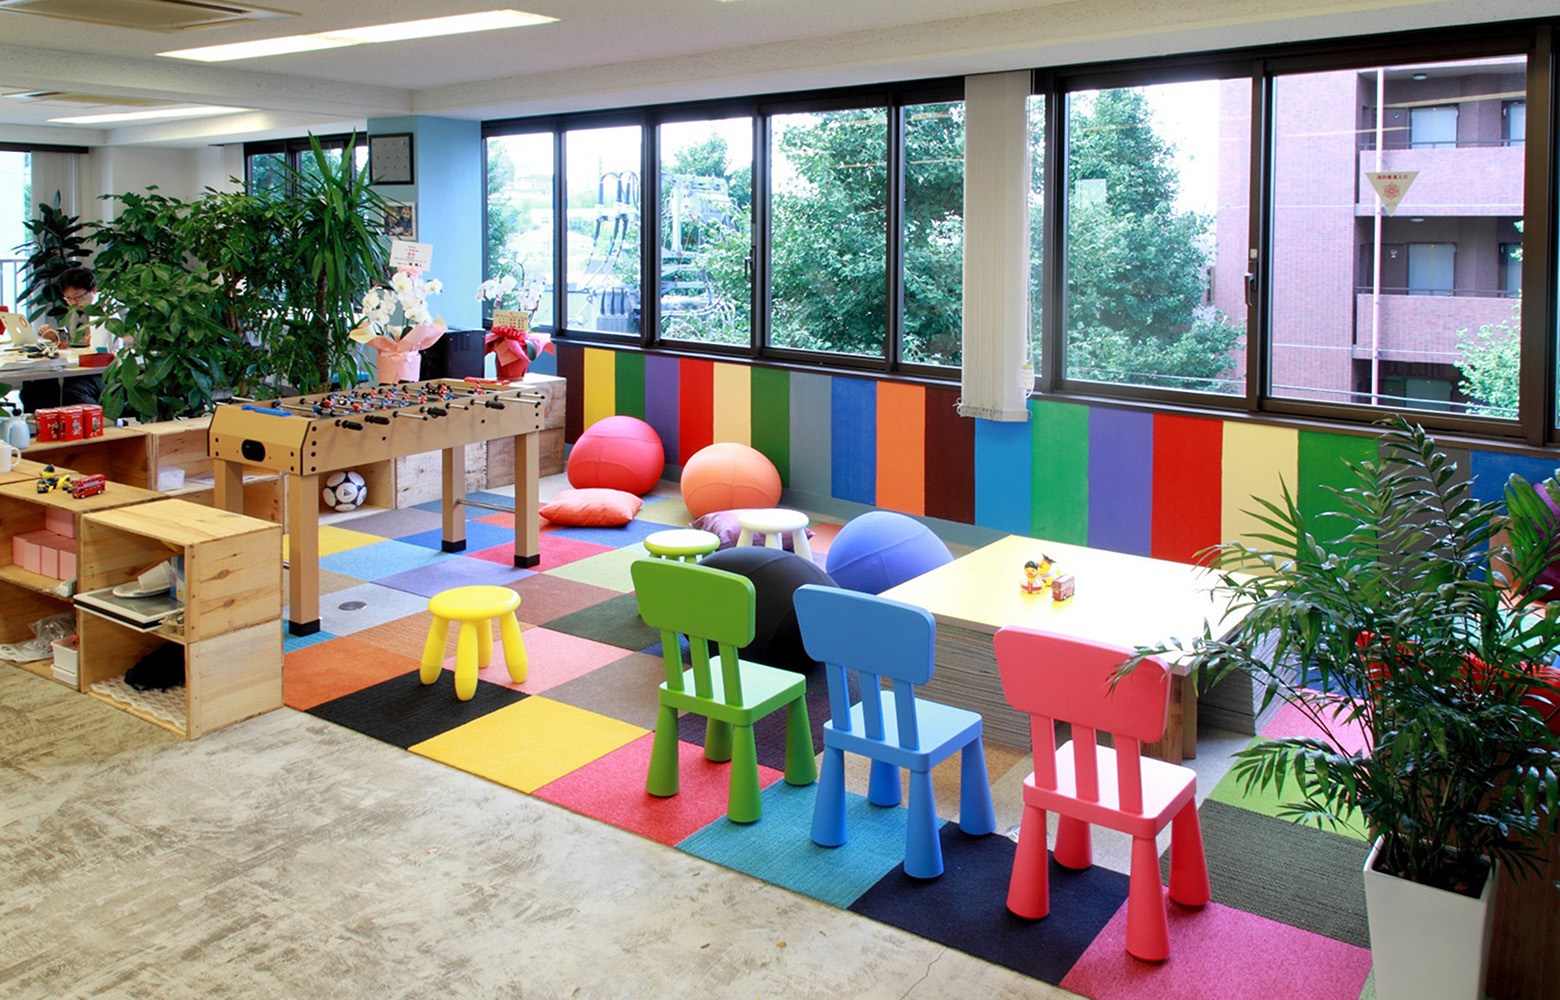 Quipper Ltd Japan Branch Office Refresh Space デザイン・レイアウト事例